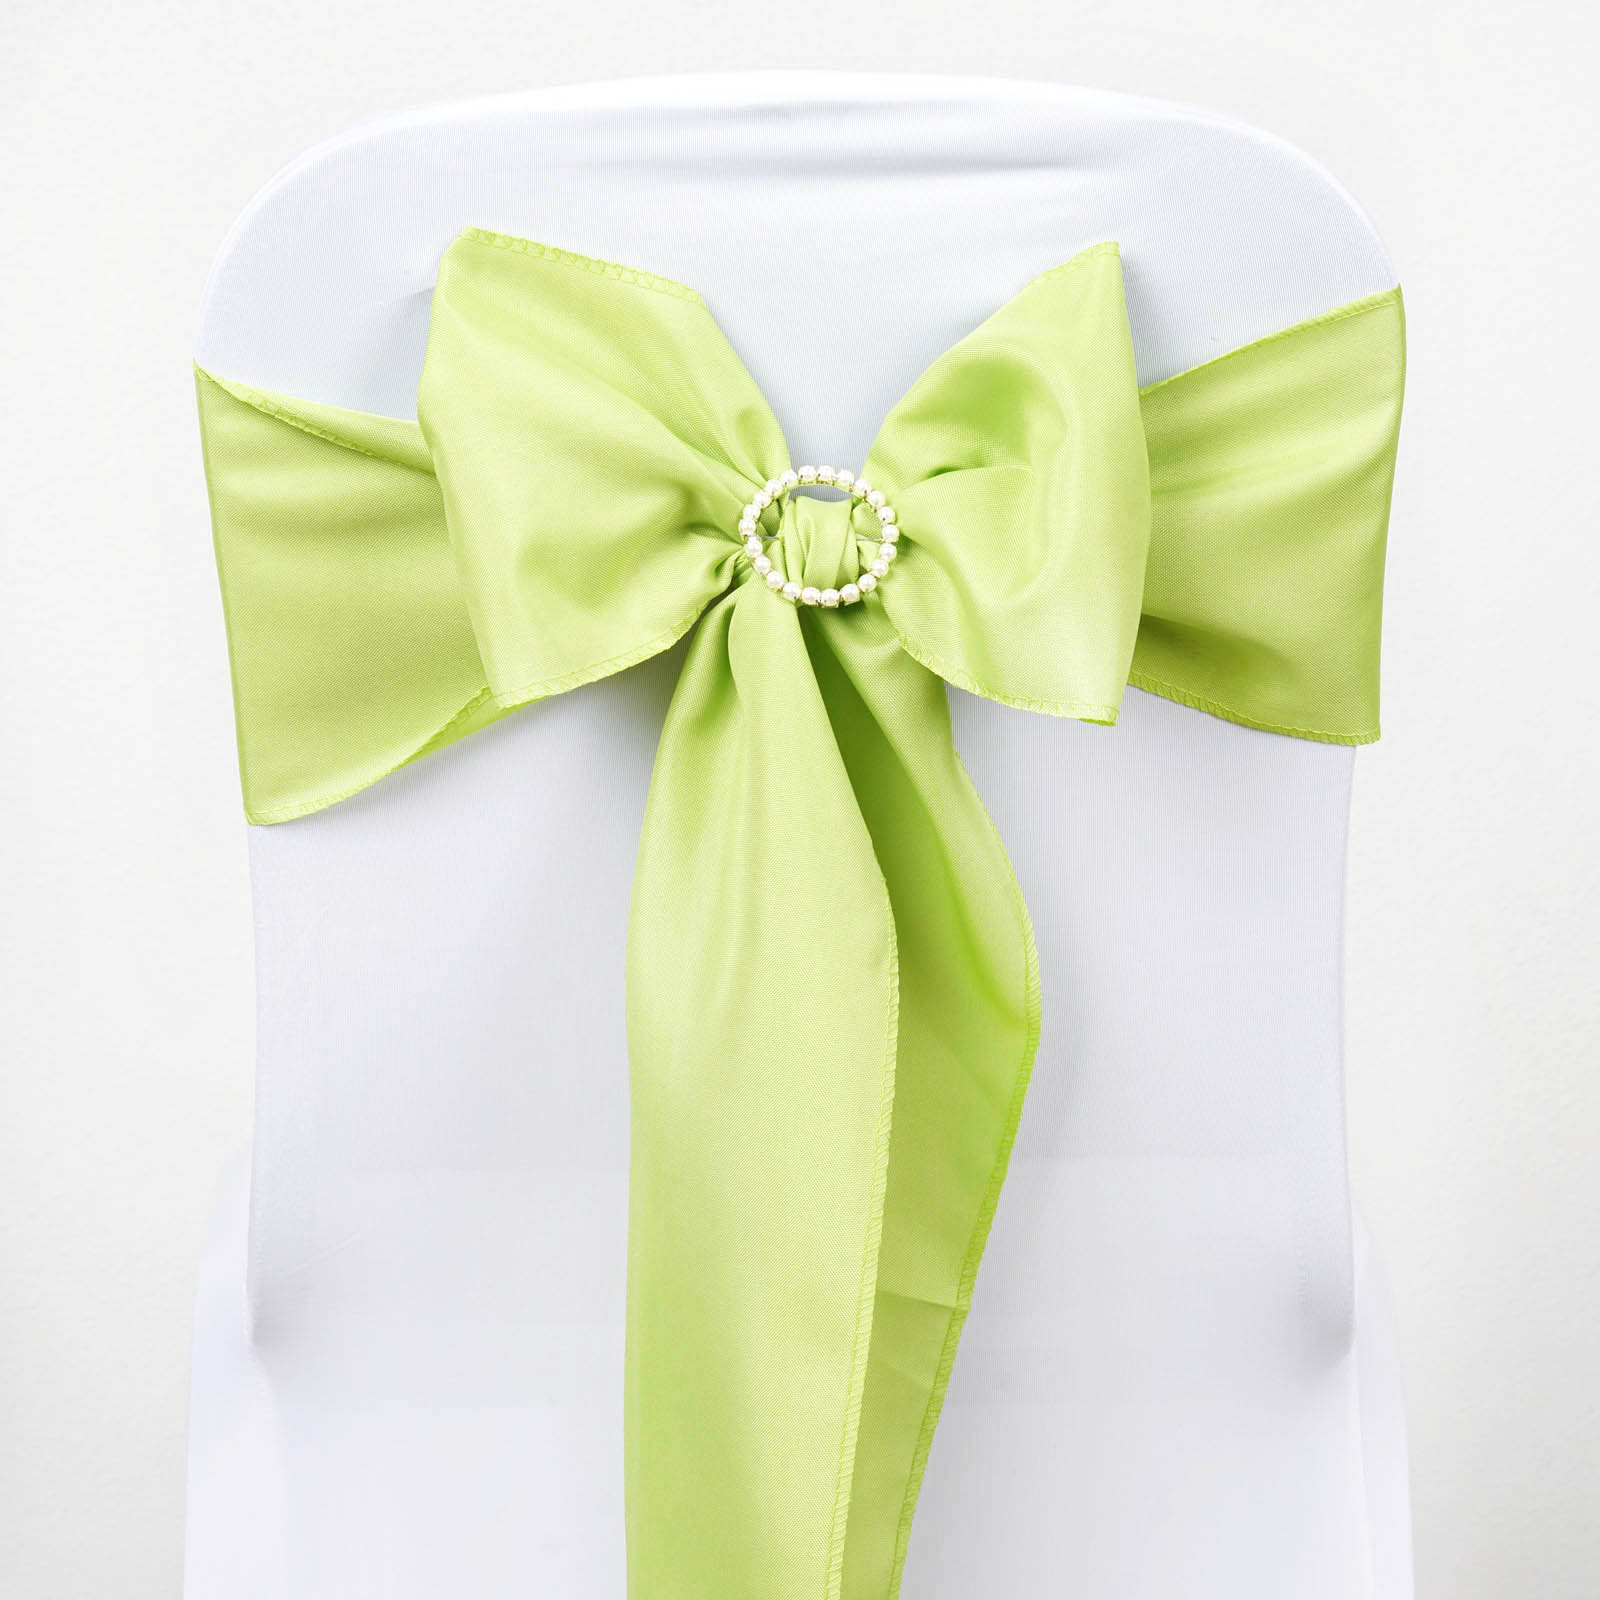 200 Polyester CHAIR SASHES Bows Ties Wholesale Wedding PARTY Decorations Supply